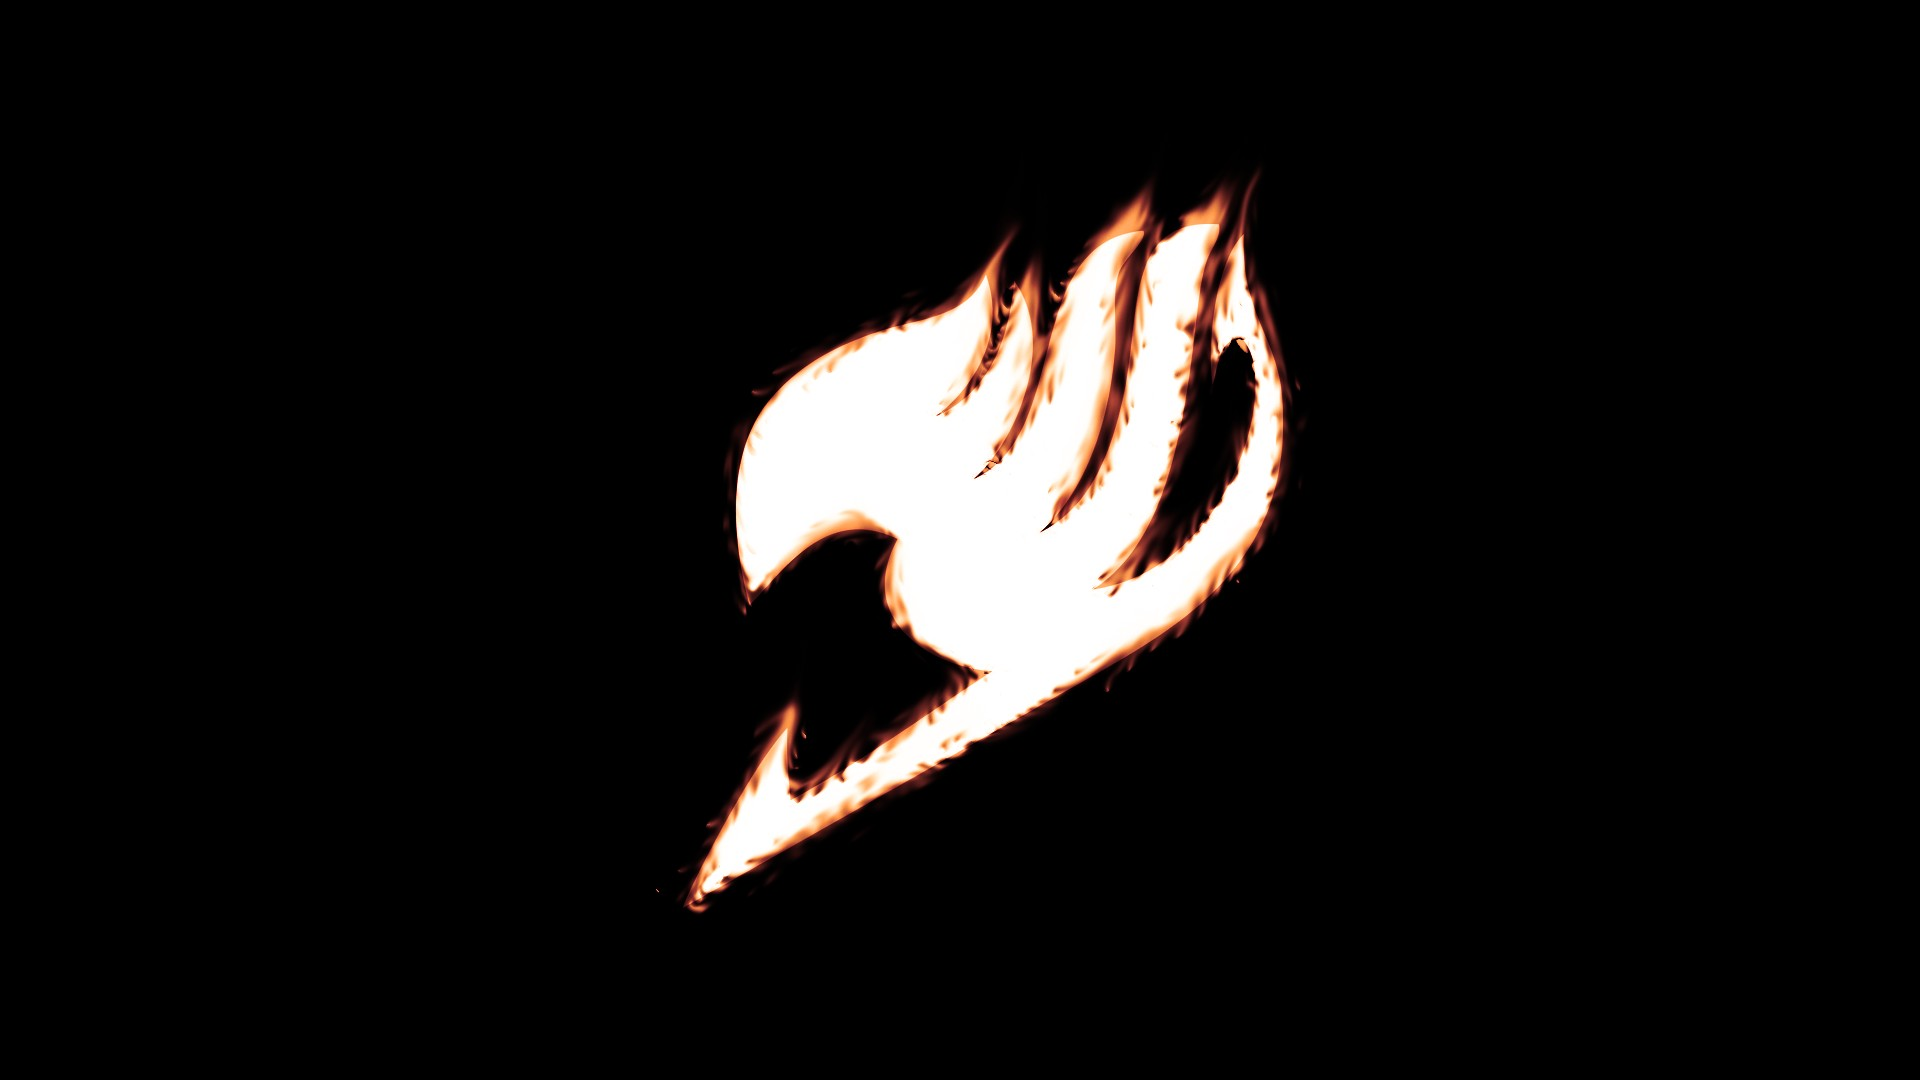 Fairy Tail Logo Wallpapers 1920x1080 Backgrounds Unique HD 1920x1080